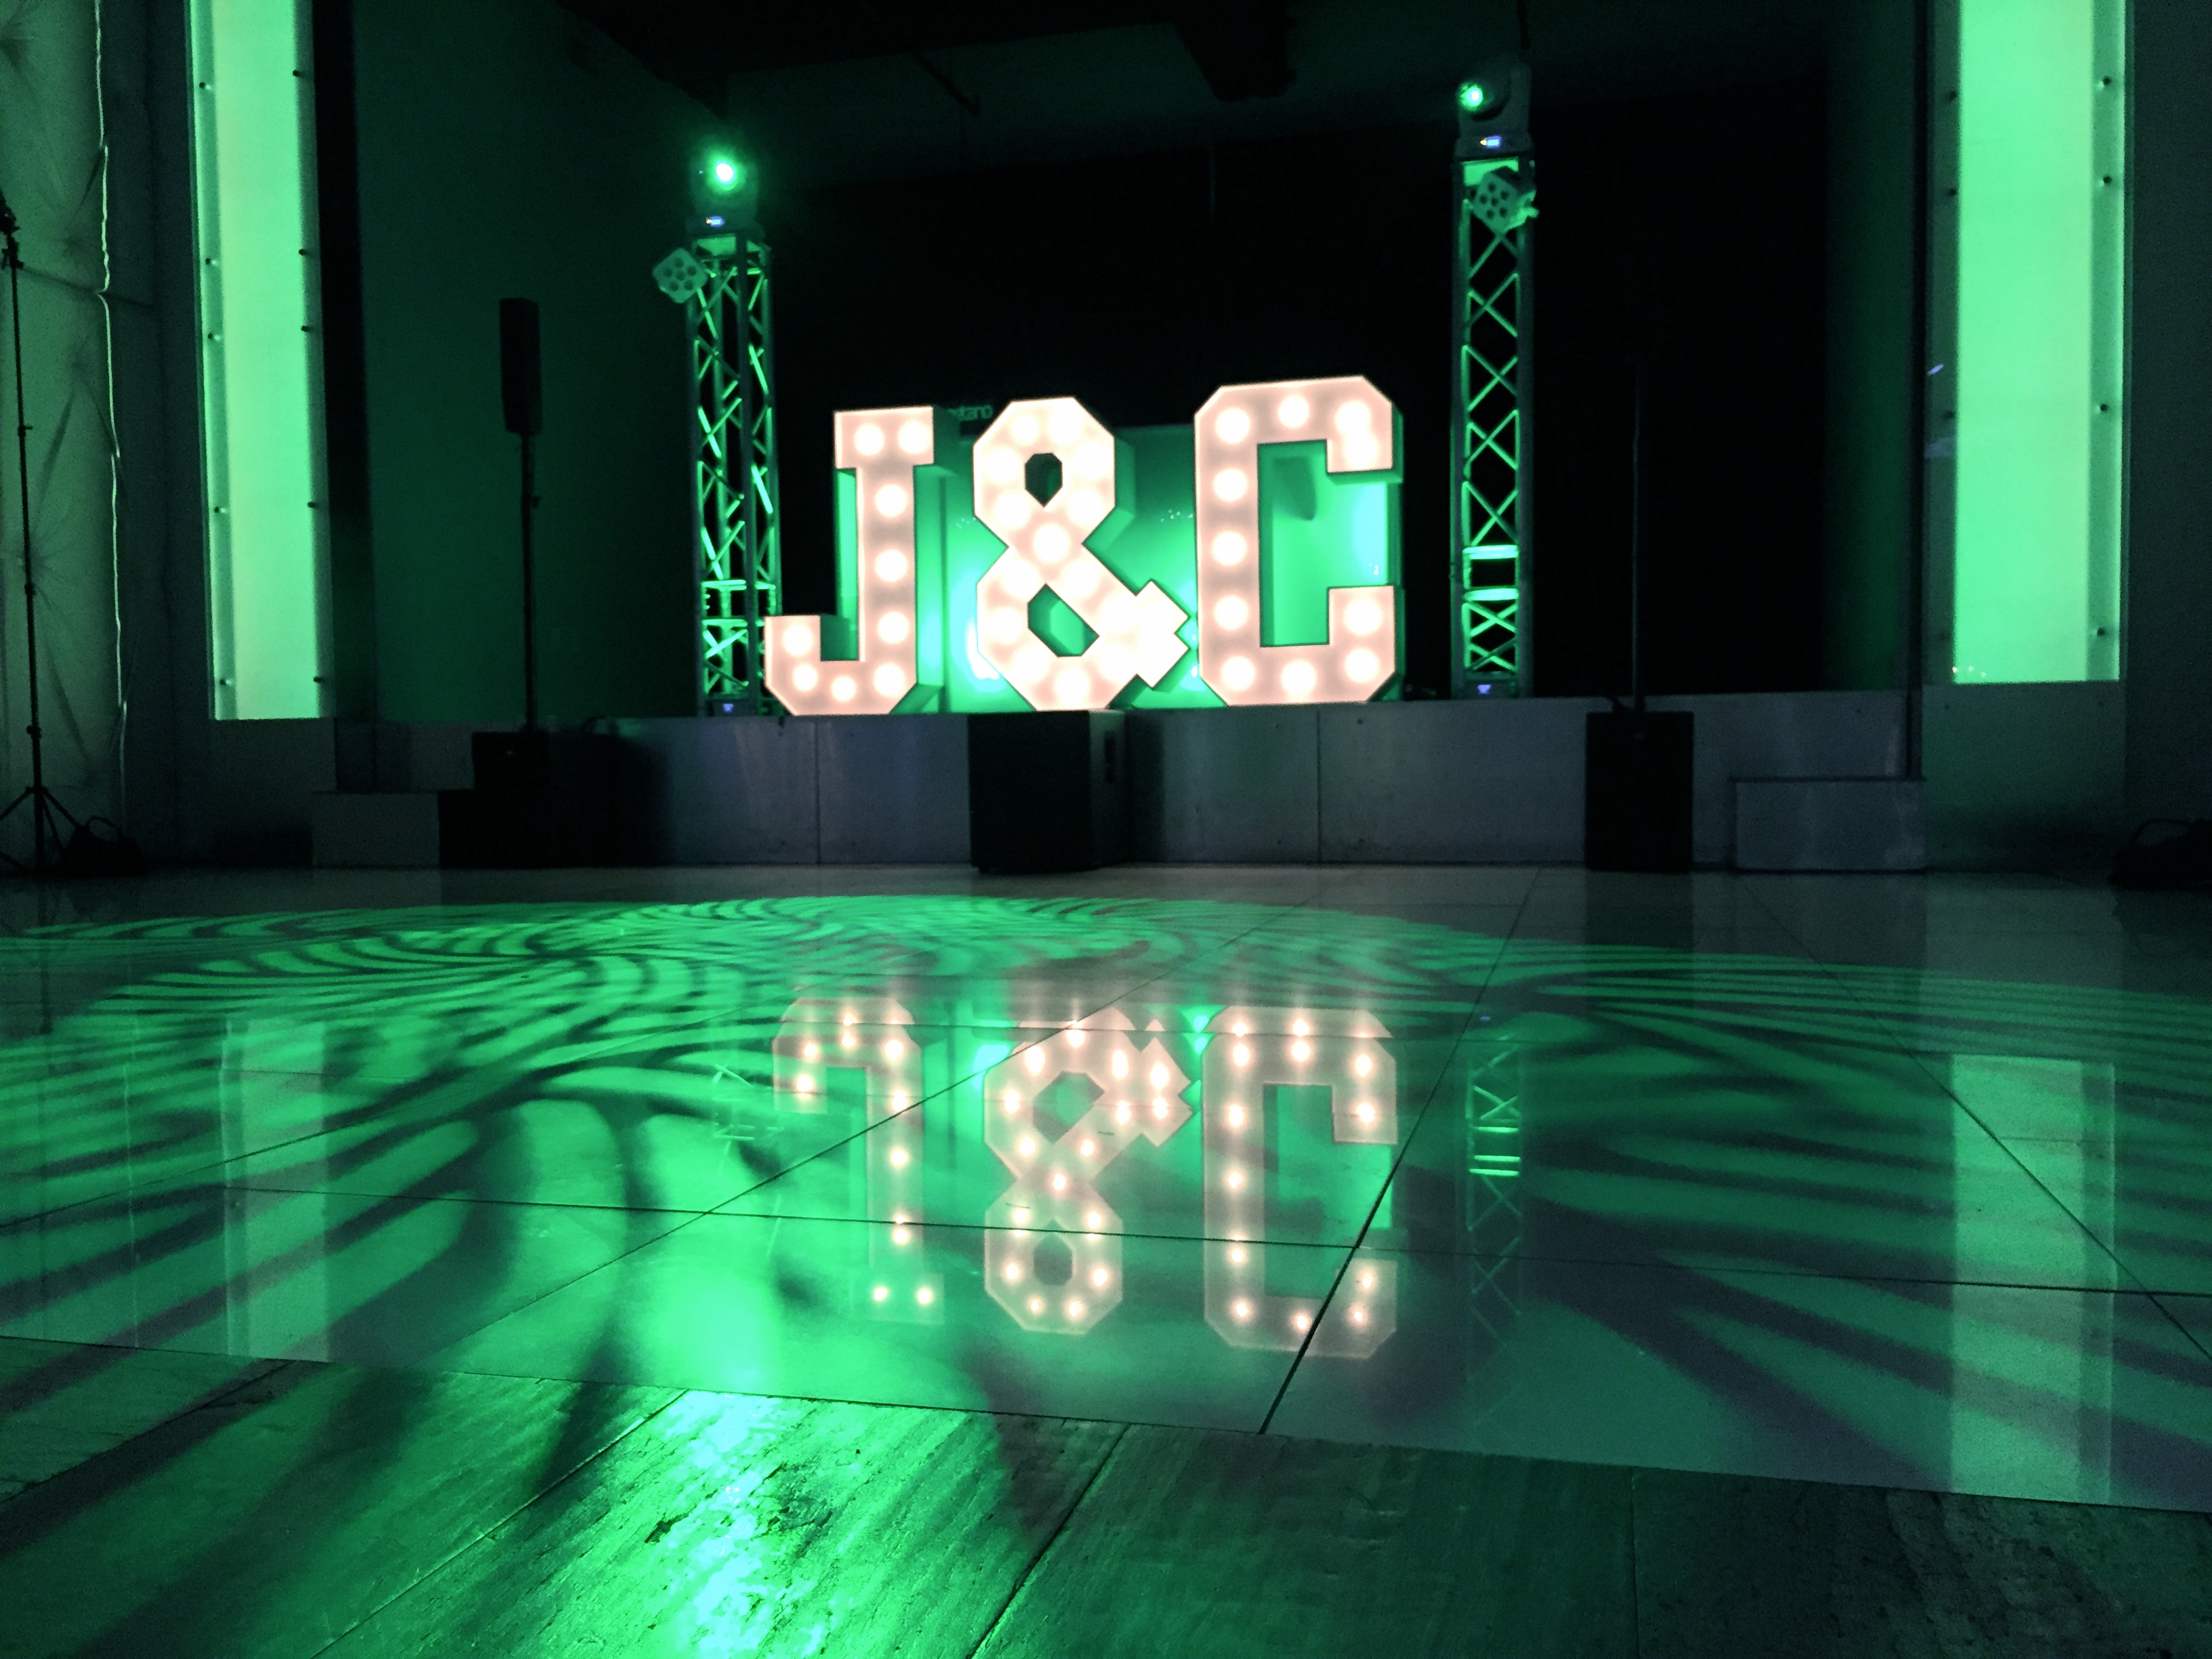 Tendenza, DJ Gaetano, Cescaphe Events, Lighting, Marquee lettering, Trussing,